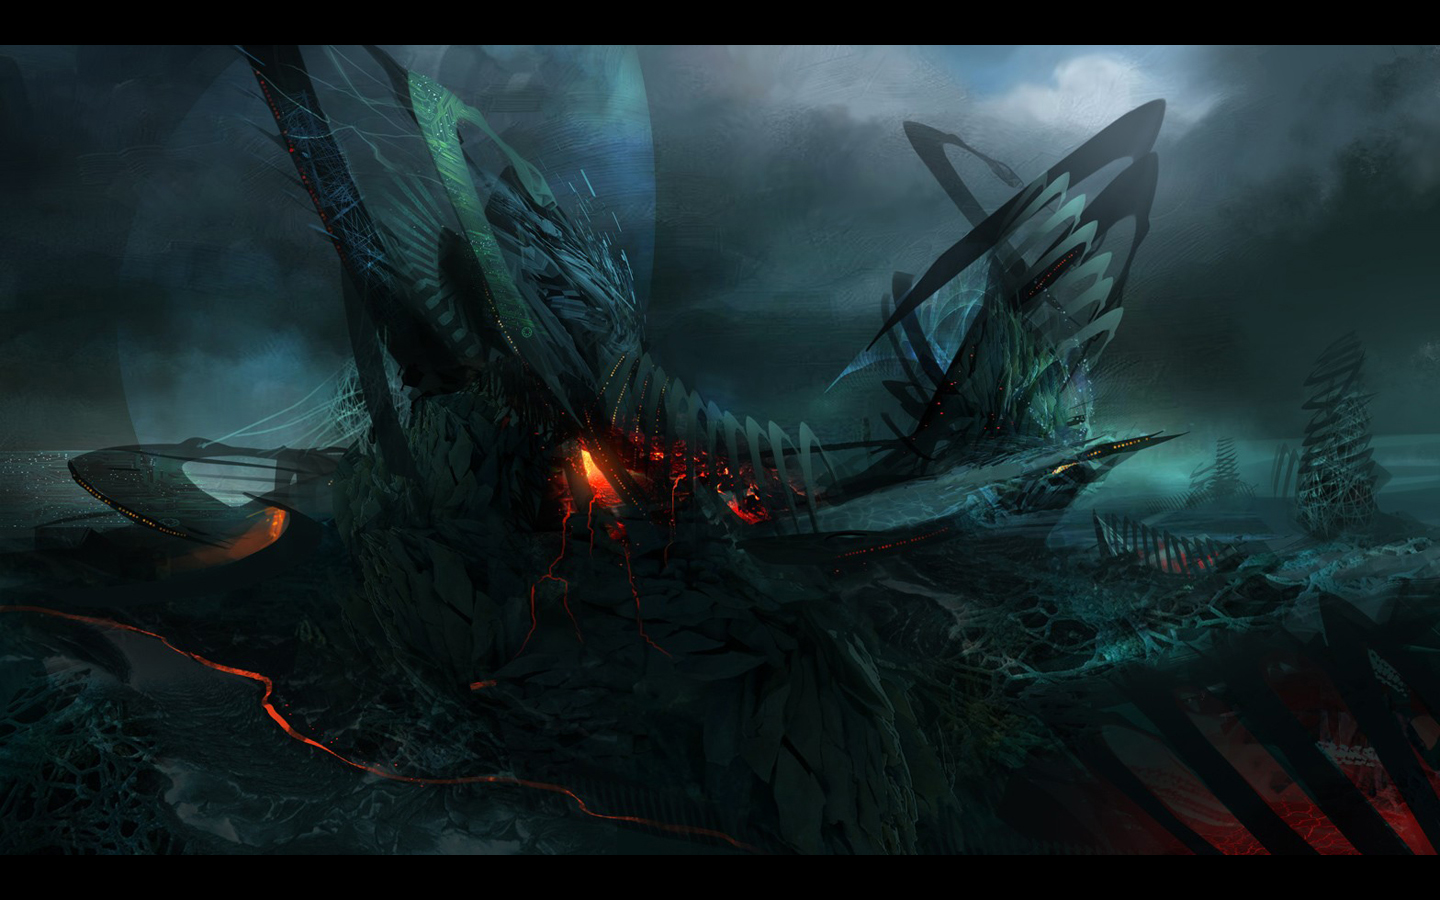 http wallpapers wallpapersdepo net wallpapers 1393 sci fi cities 1440x900